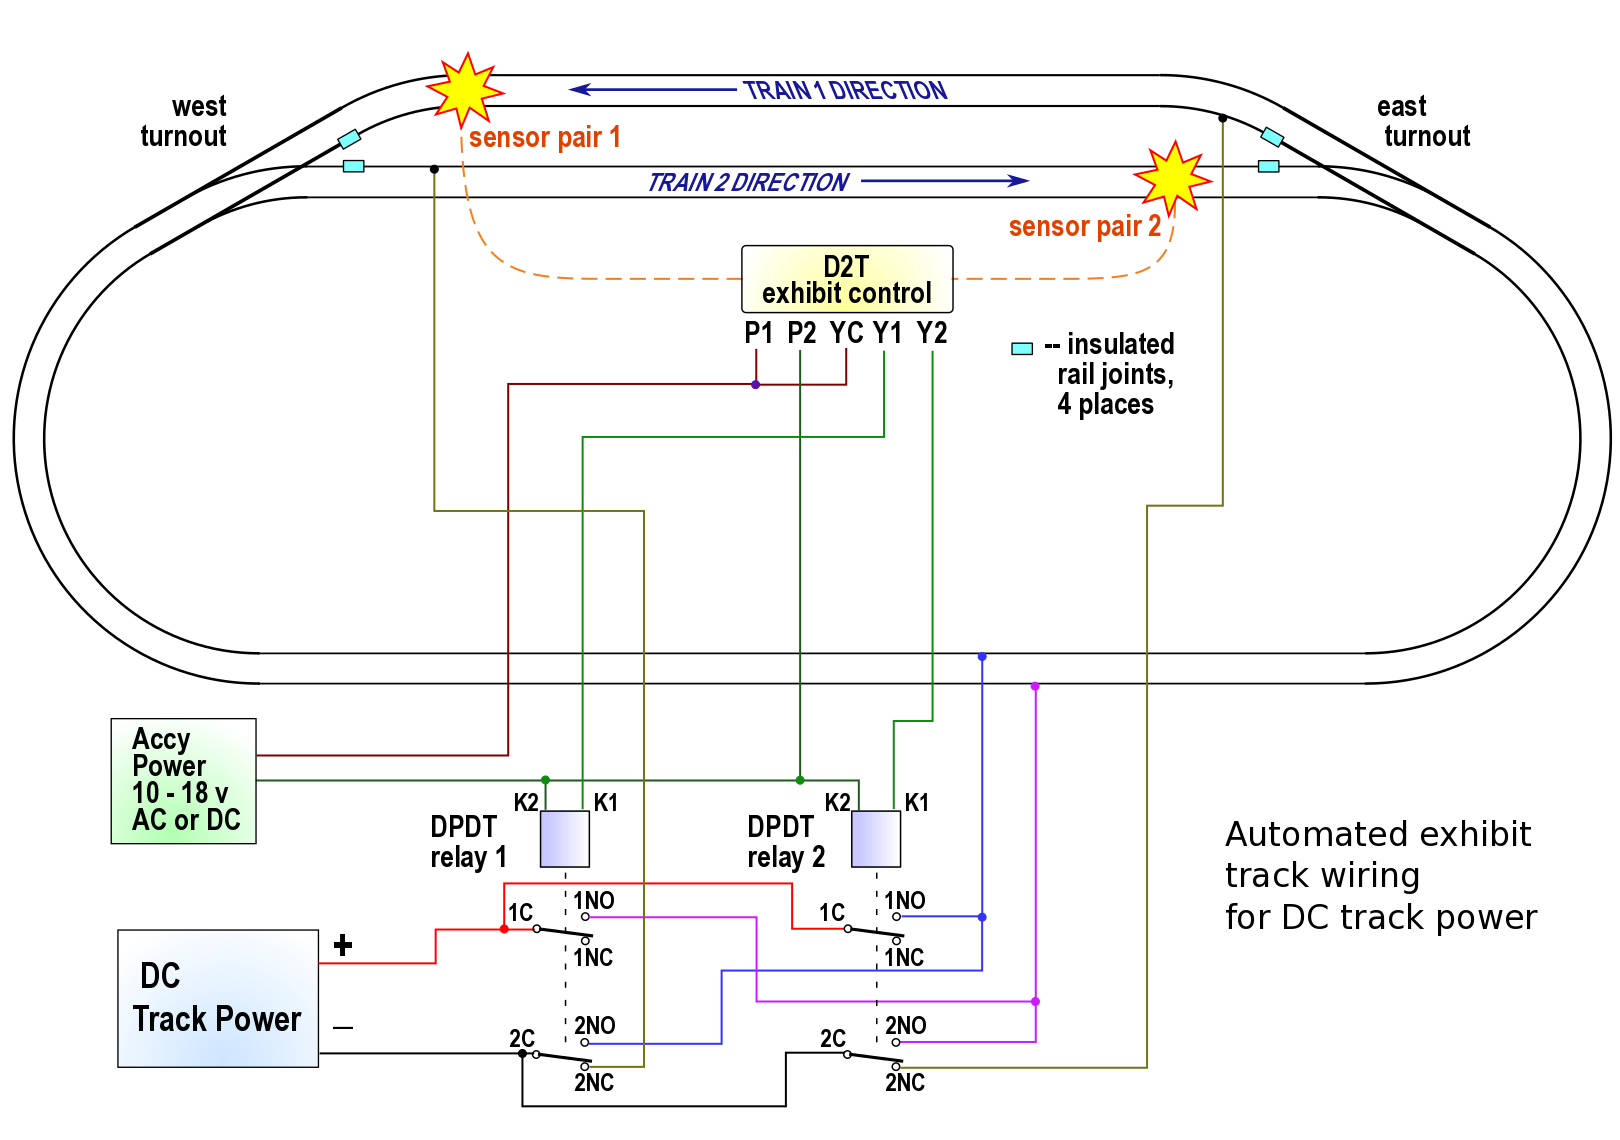 loop wiring diagram for DC Pinterest